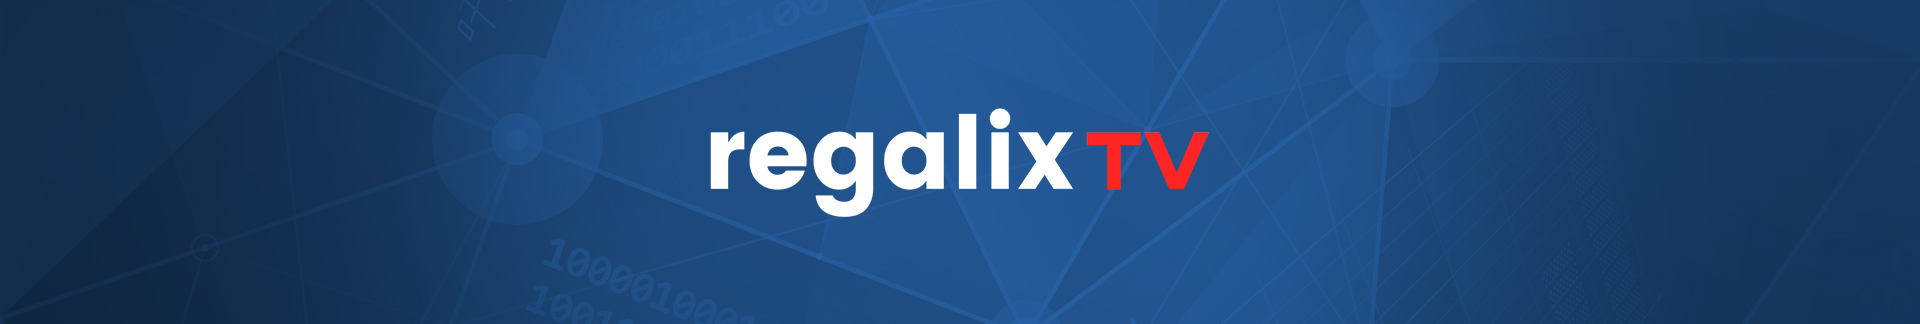 Regalix news banner